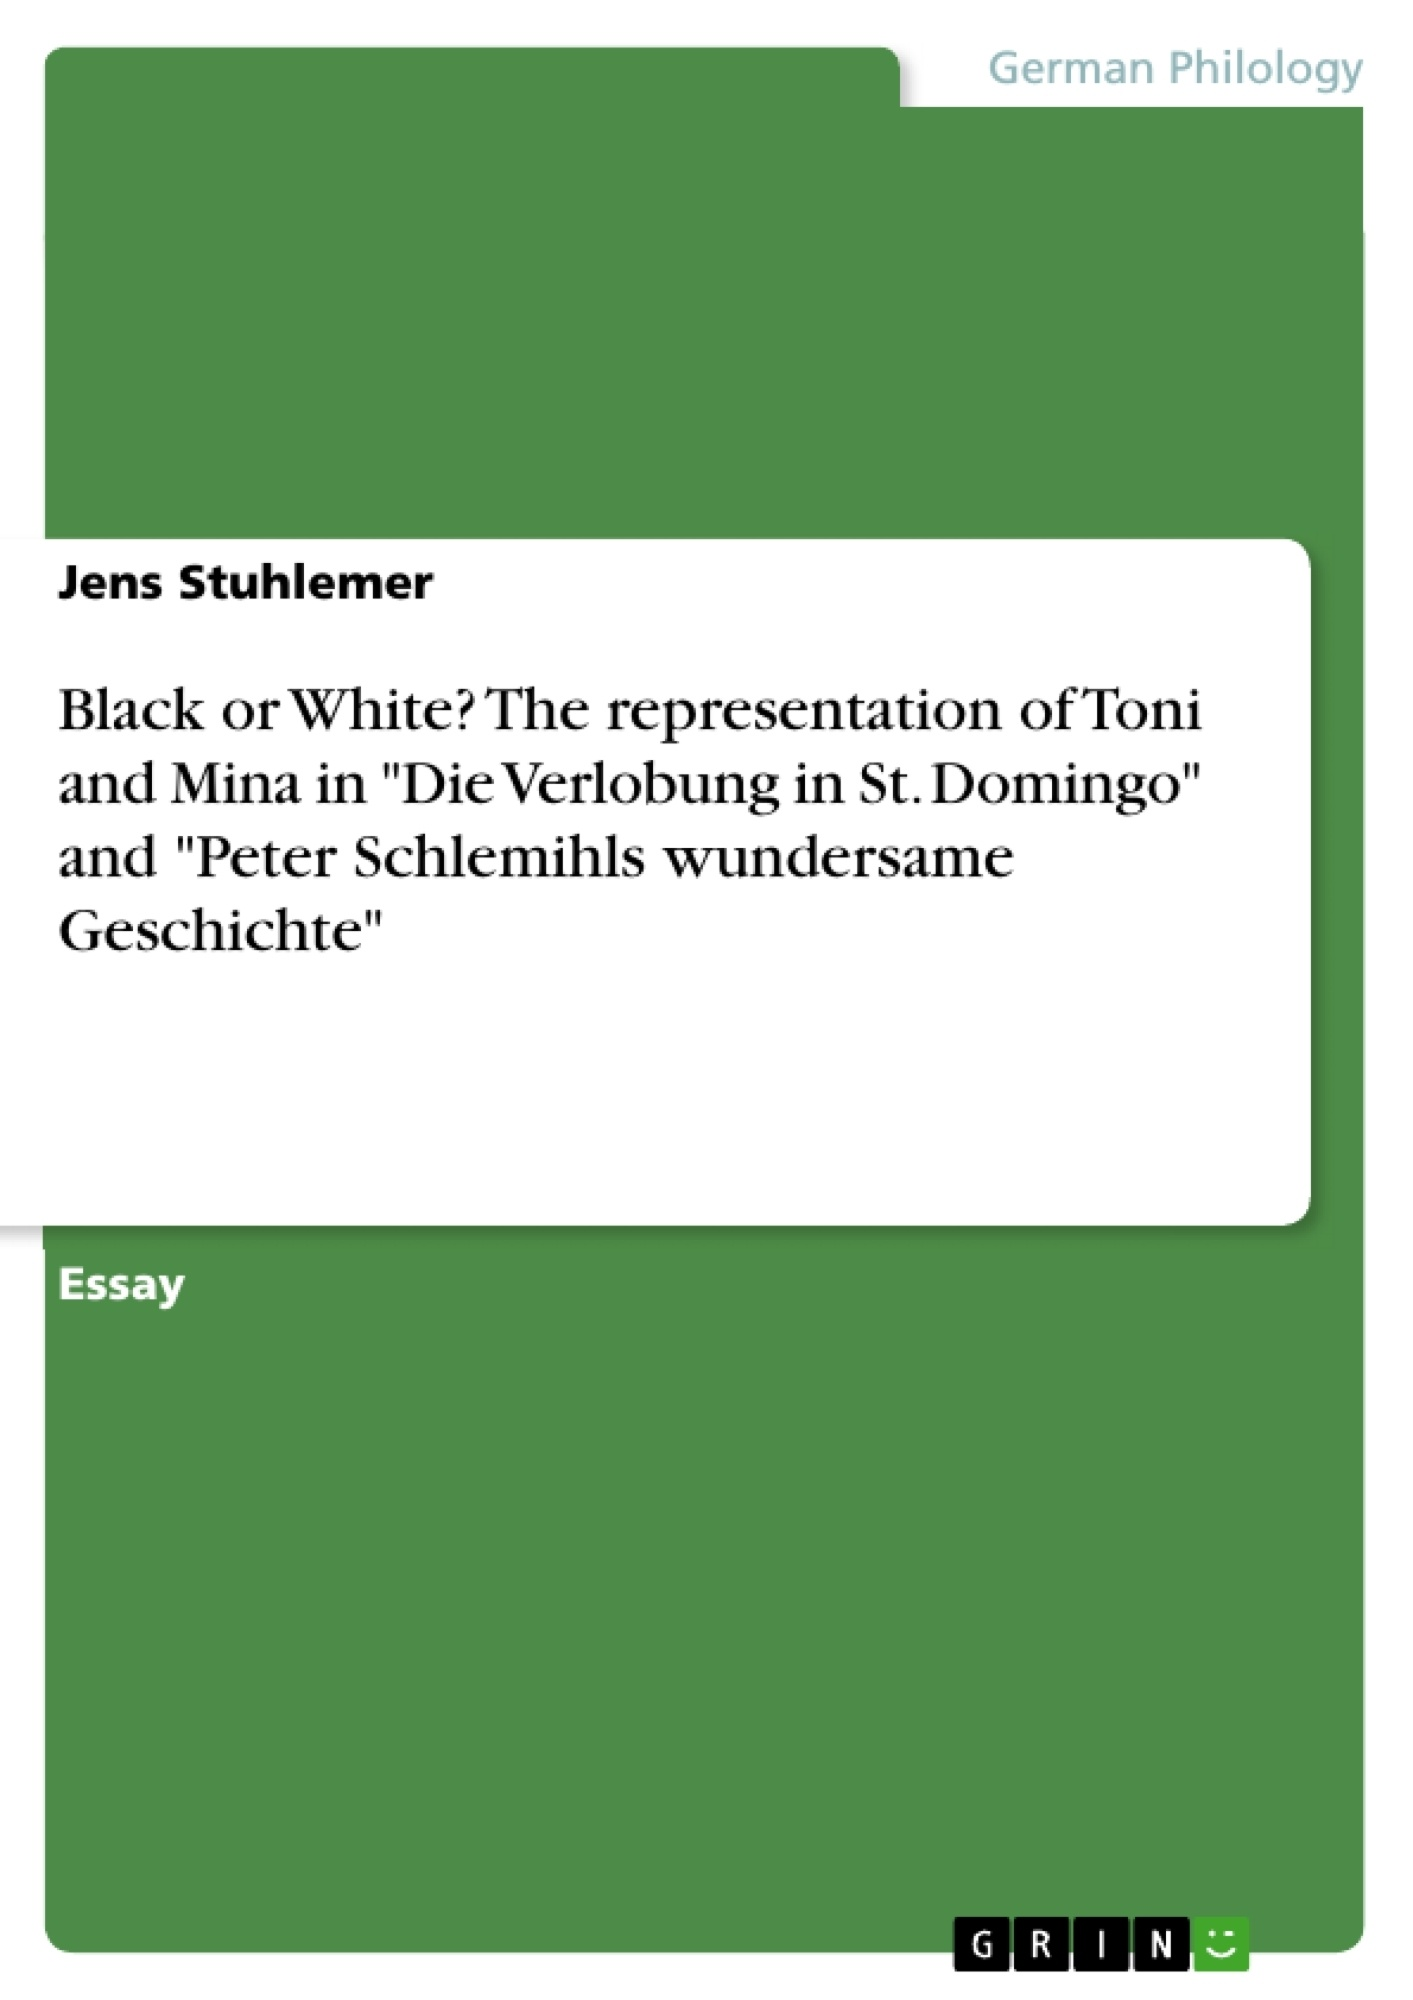 """Title: Black or White? The representation of Toni and Mina in """"Die Verlobung in St. Domingo"""" and """"Peter Schlemihls wundersame Geschichte"""""""